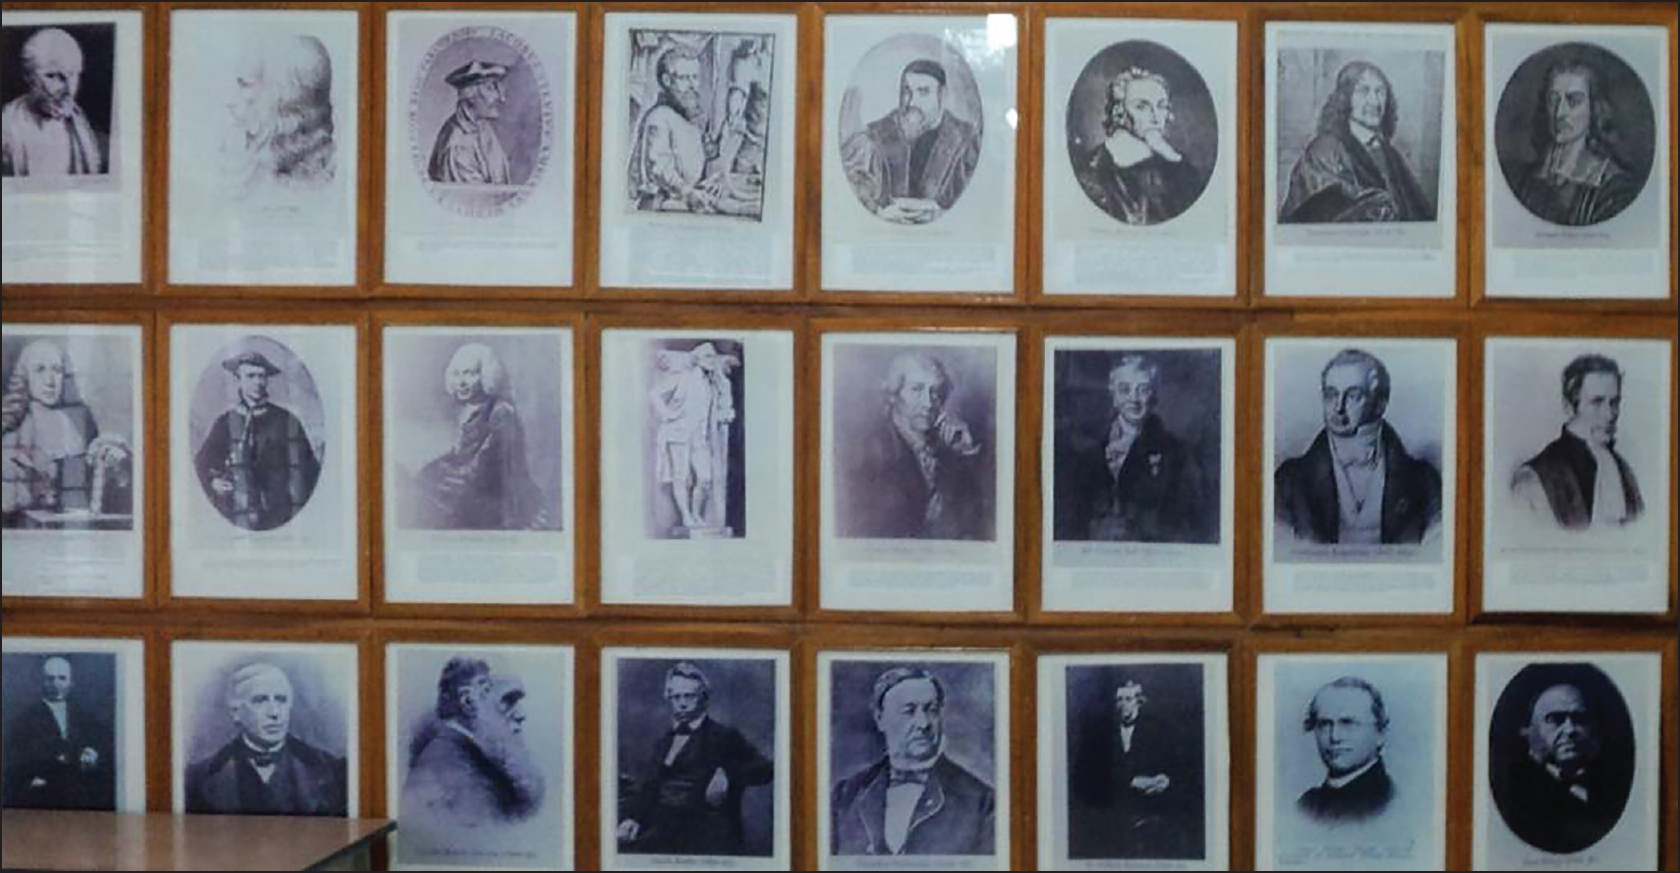 Figure 1: Portraits of eminent anatomists. Courtesy Sri Devaraj Urs Medical College Anatomy Museum, Kolar